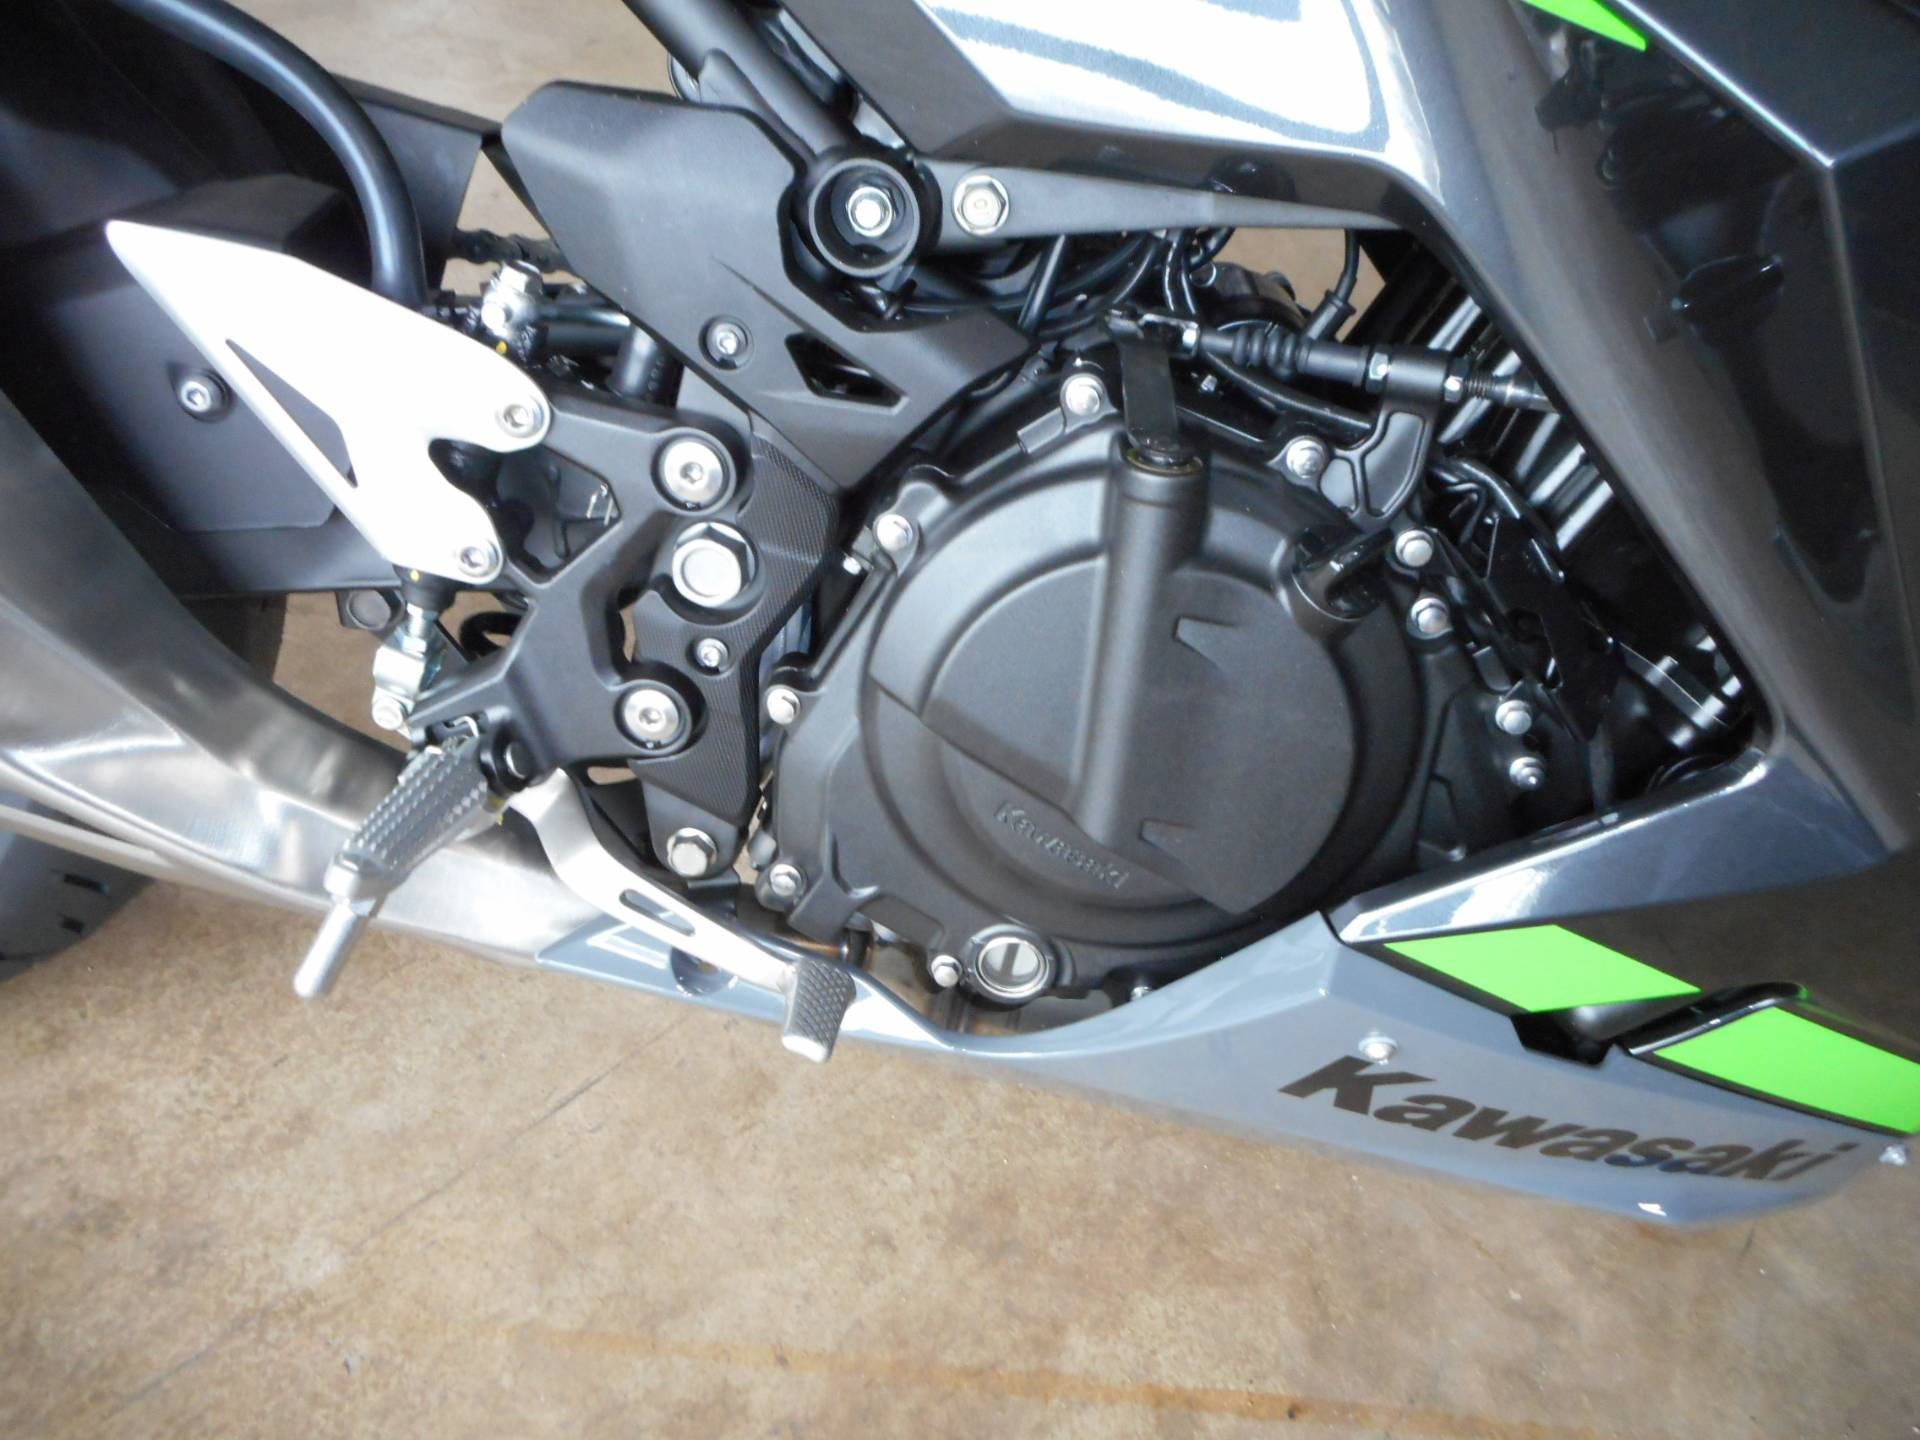 2019 Kawasaki Ninja 400 ABS in Belvidere, Illinois - Photo 9